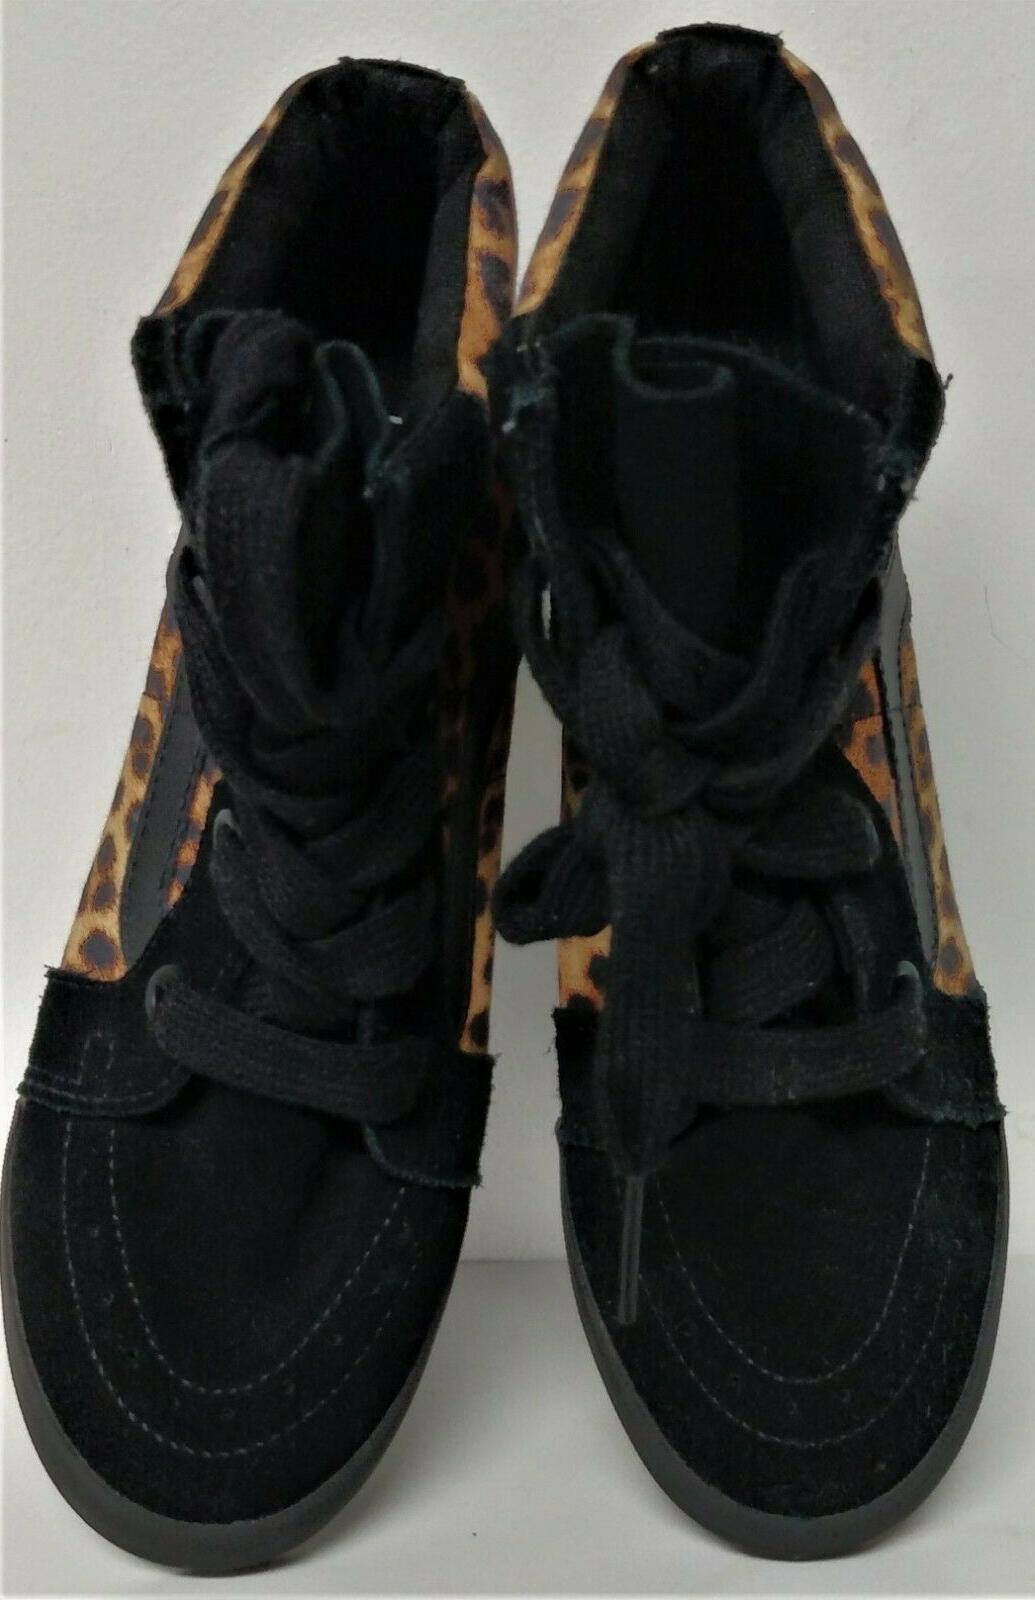 NEW Vans SK8 Animal Print Wedge High-Top Shoes-Size